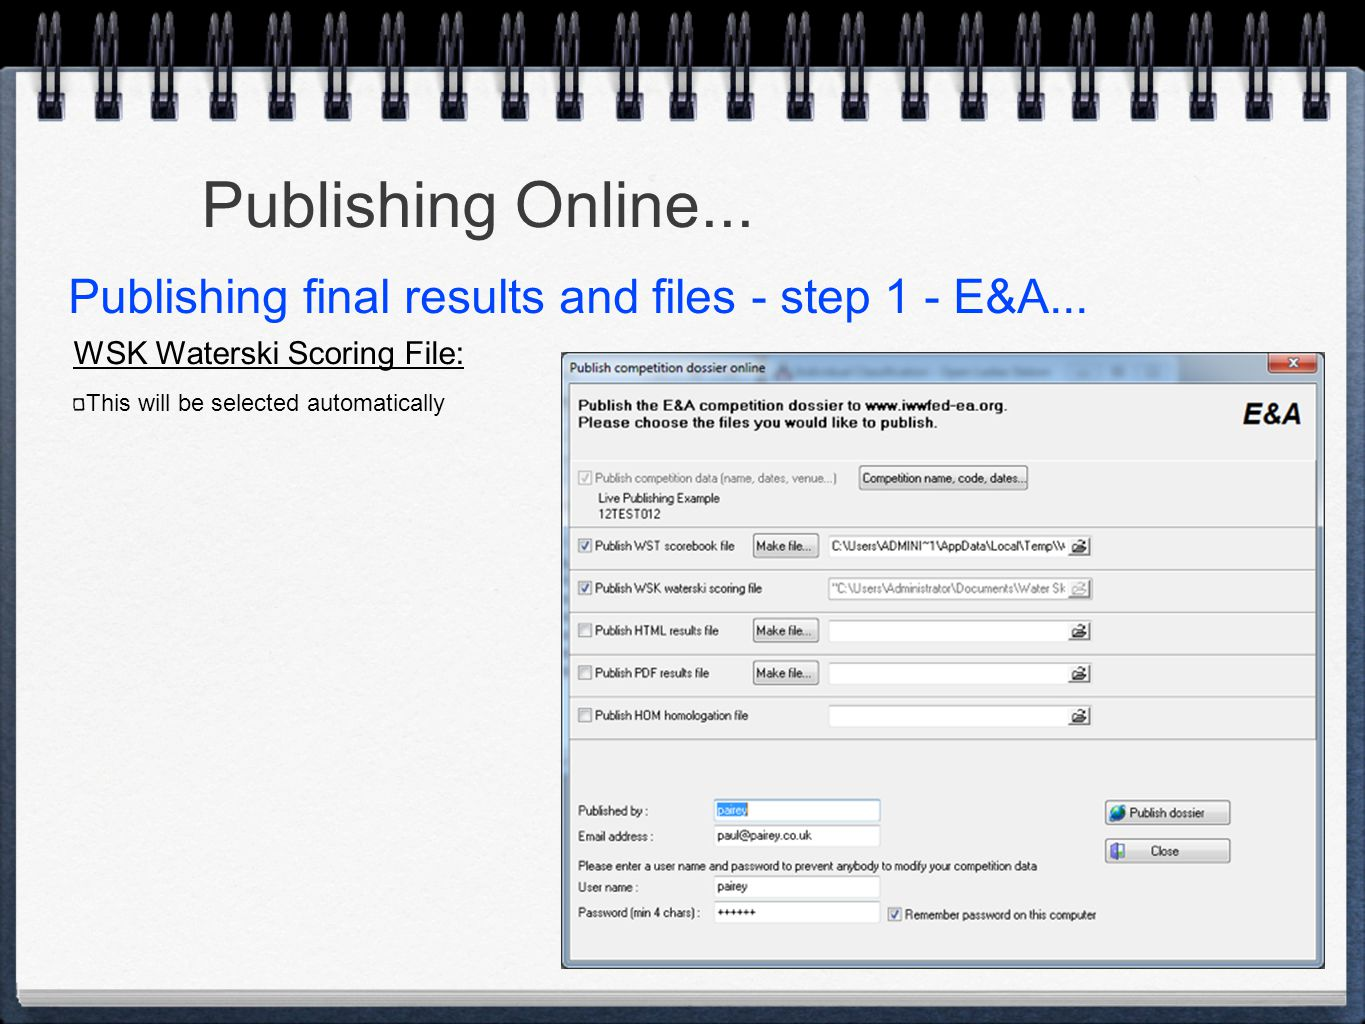 Publishing Online... WSK Waterski Scoring File: This will be selected automatically Publishing final results and files - step 1 - E&A...